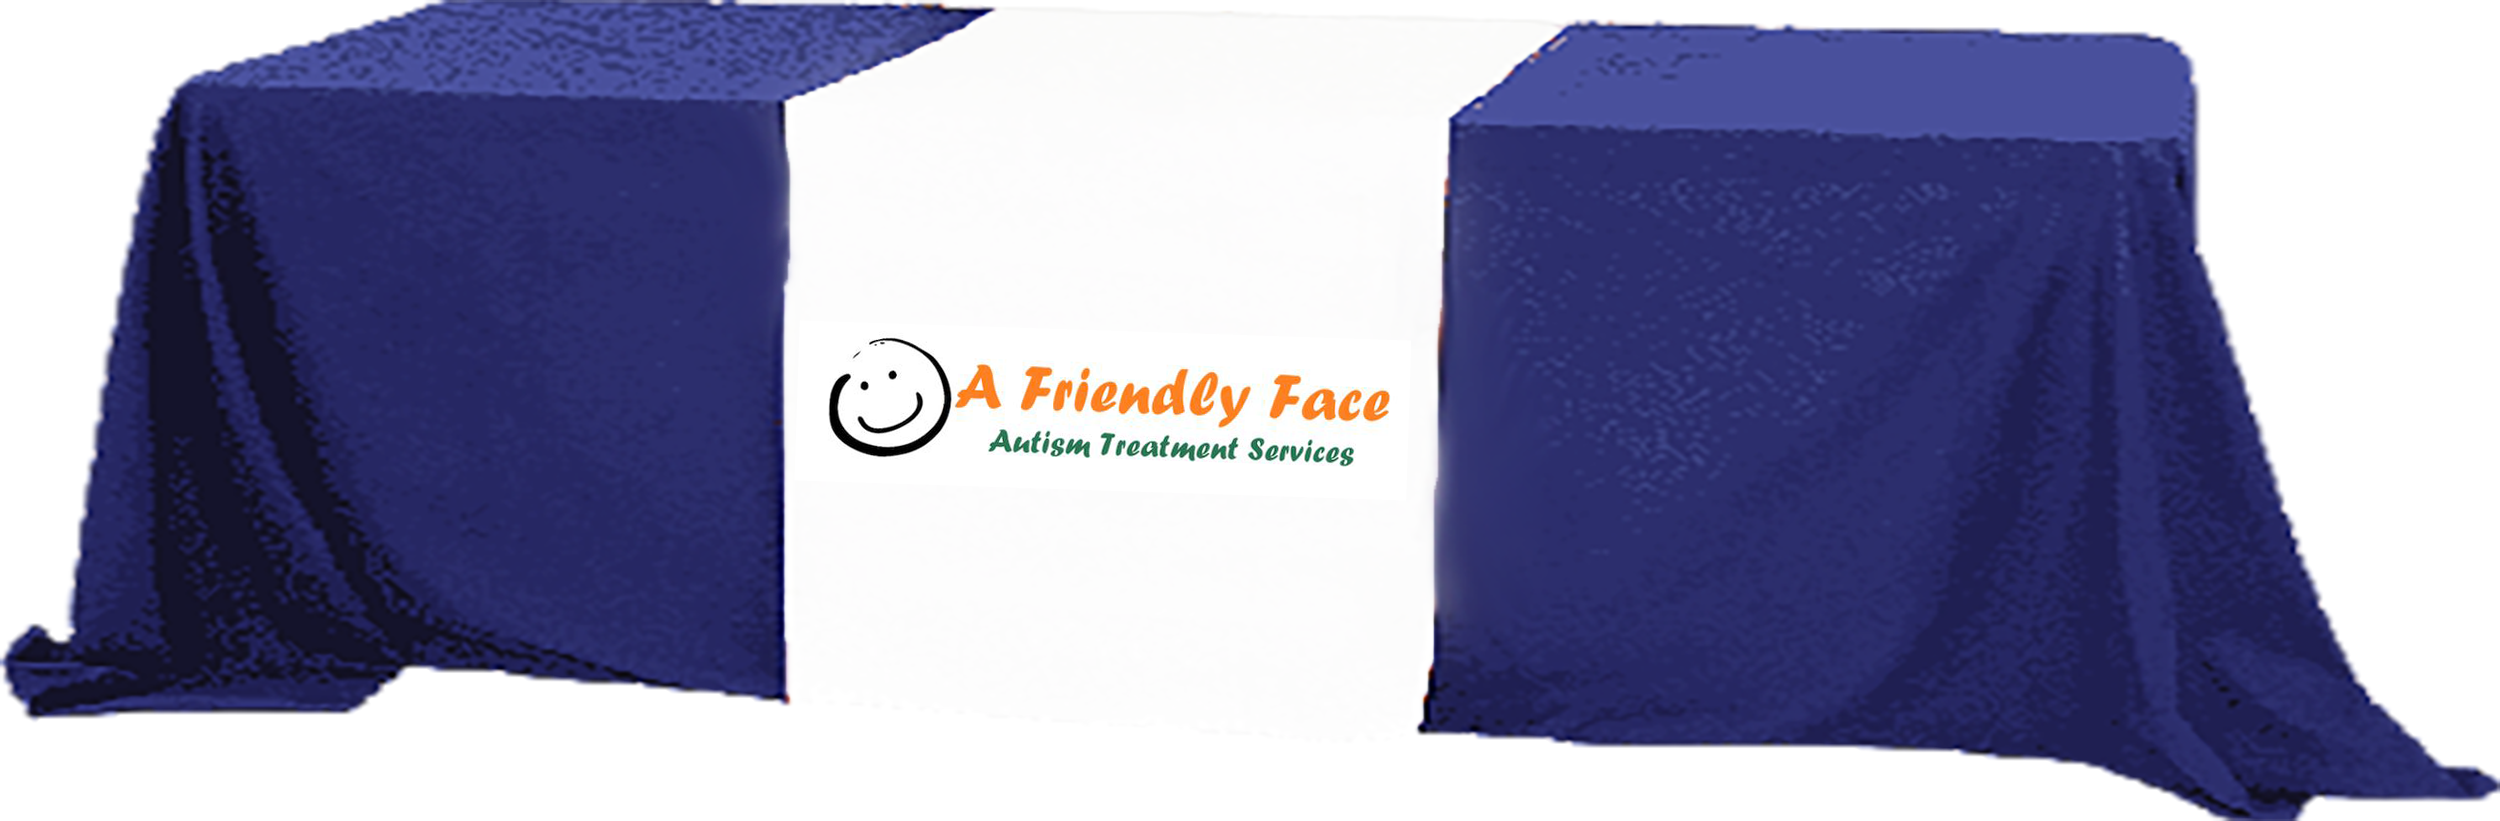 A Friendly Face logo on a table cover over a table image